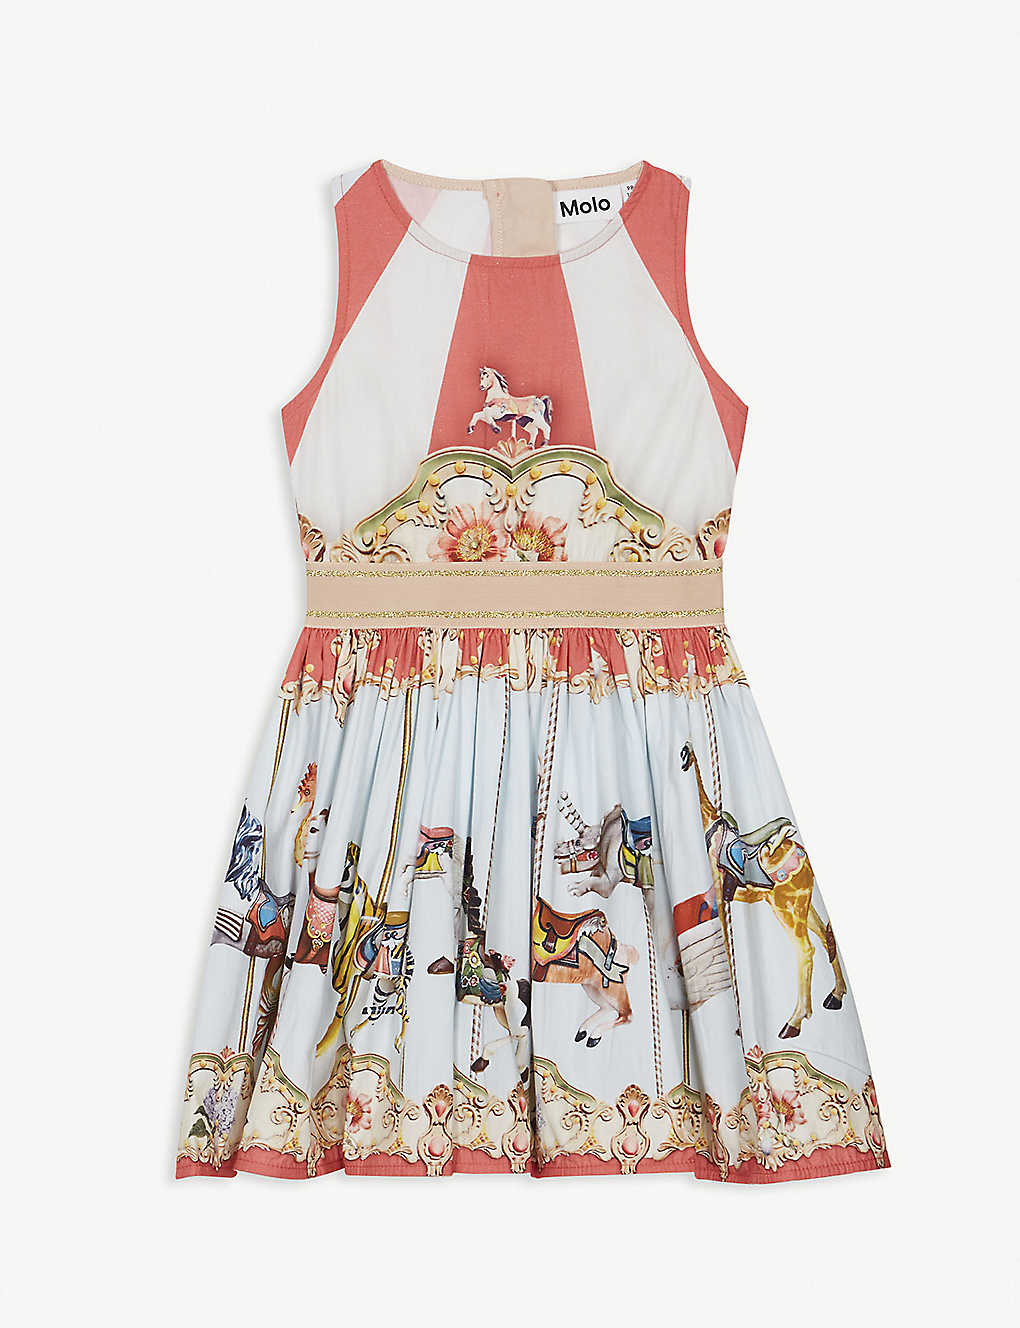 1b8397282bde MOLO - Carousel print dress 3-14 years